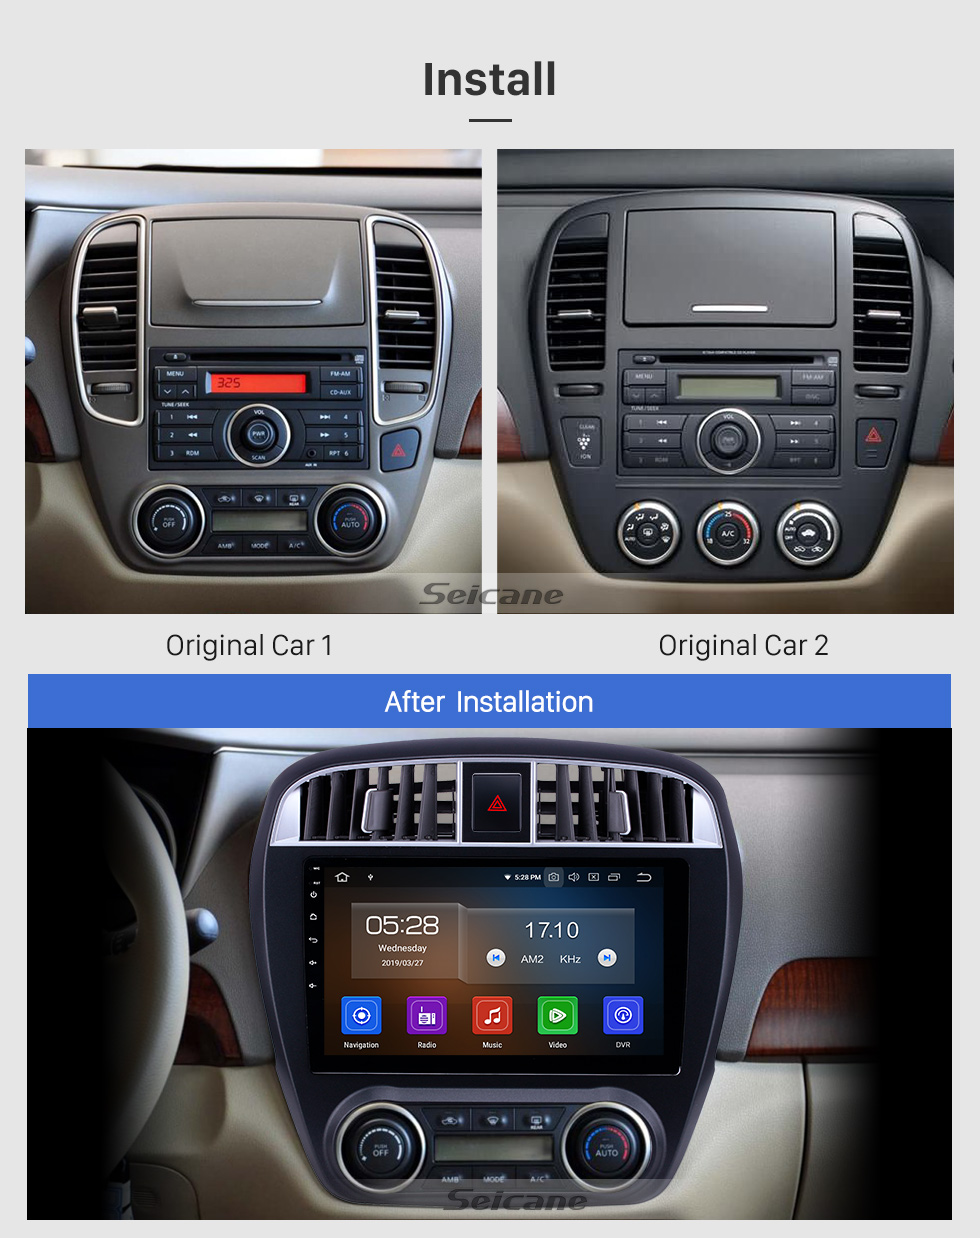 Seicane HD Touchscreen 2009 Nissan Sylphy Android 9.0 10.1 inch GPS Navigation Radio Bluetooth USB Carplay WIFI AUX support DAB+ Steering Wheel Control